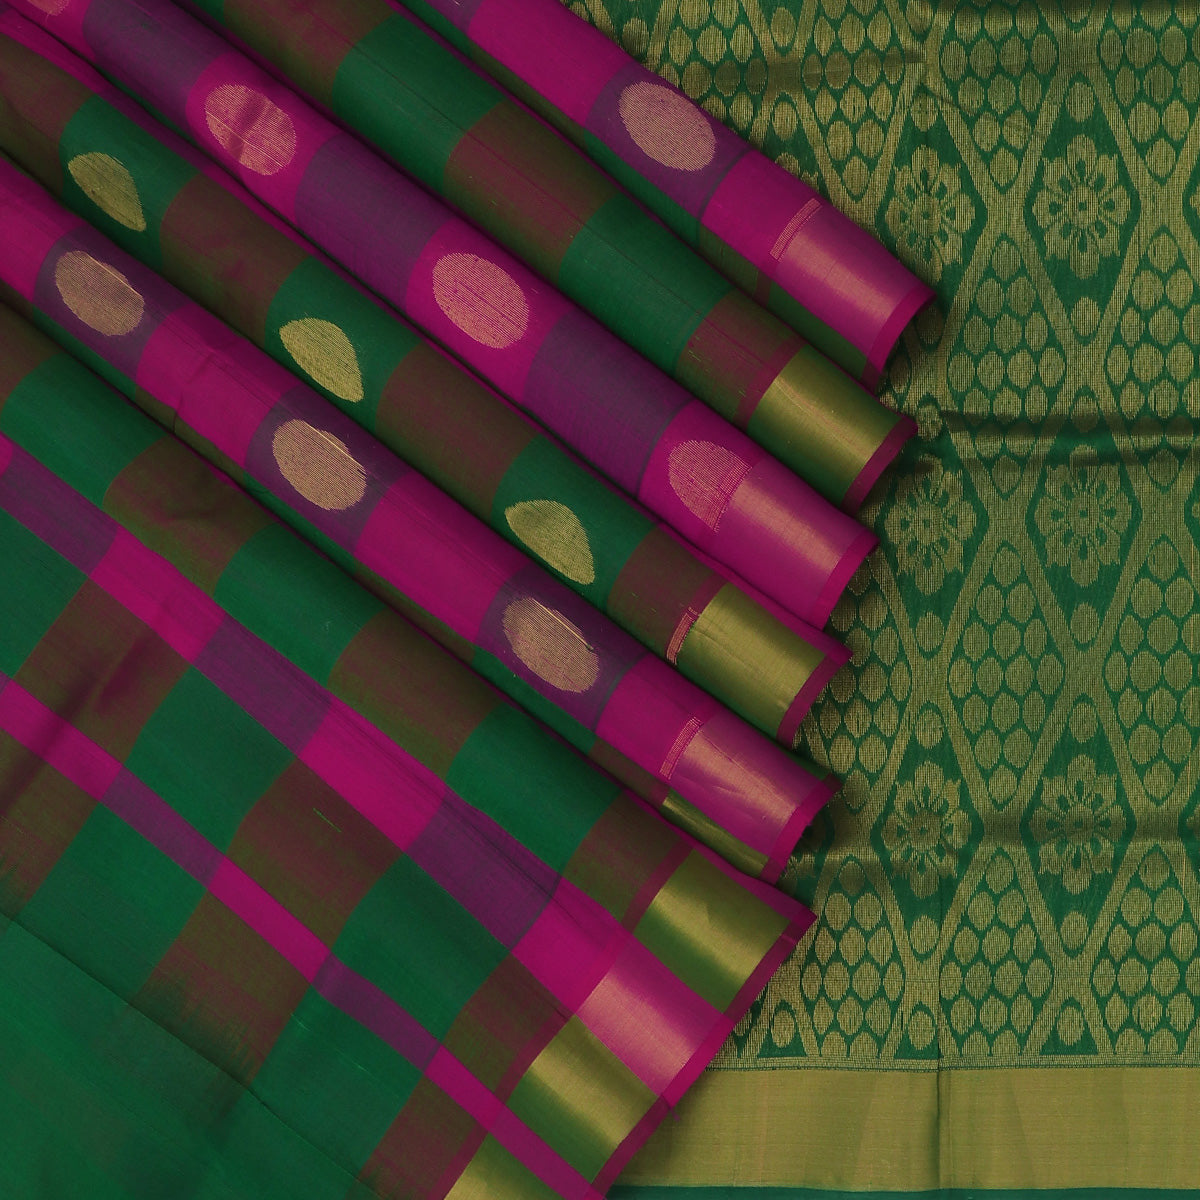 Silk Cotton Saree-Green and Pink Paalum Pazham Checks with Round buttas and zari Border